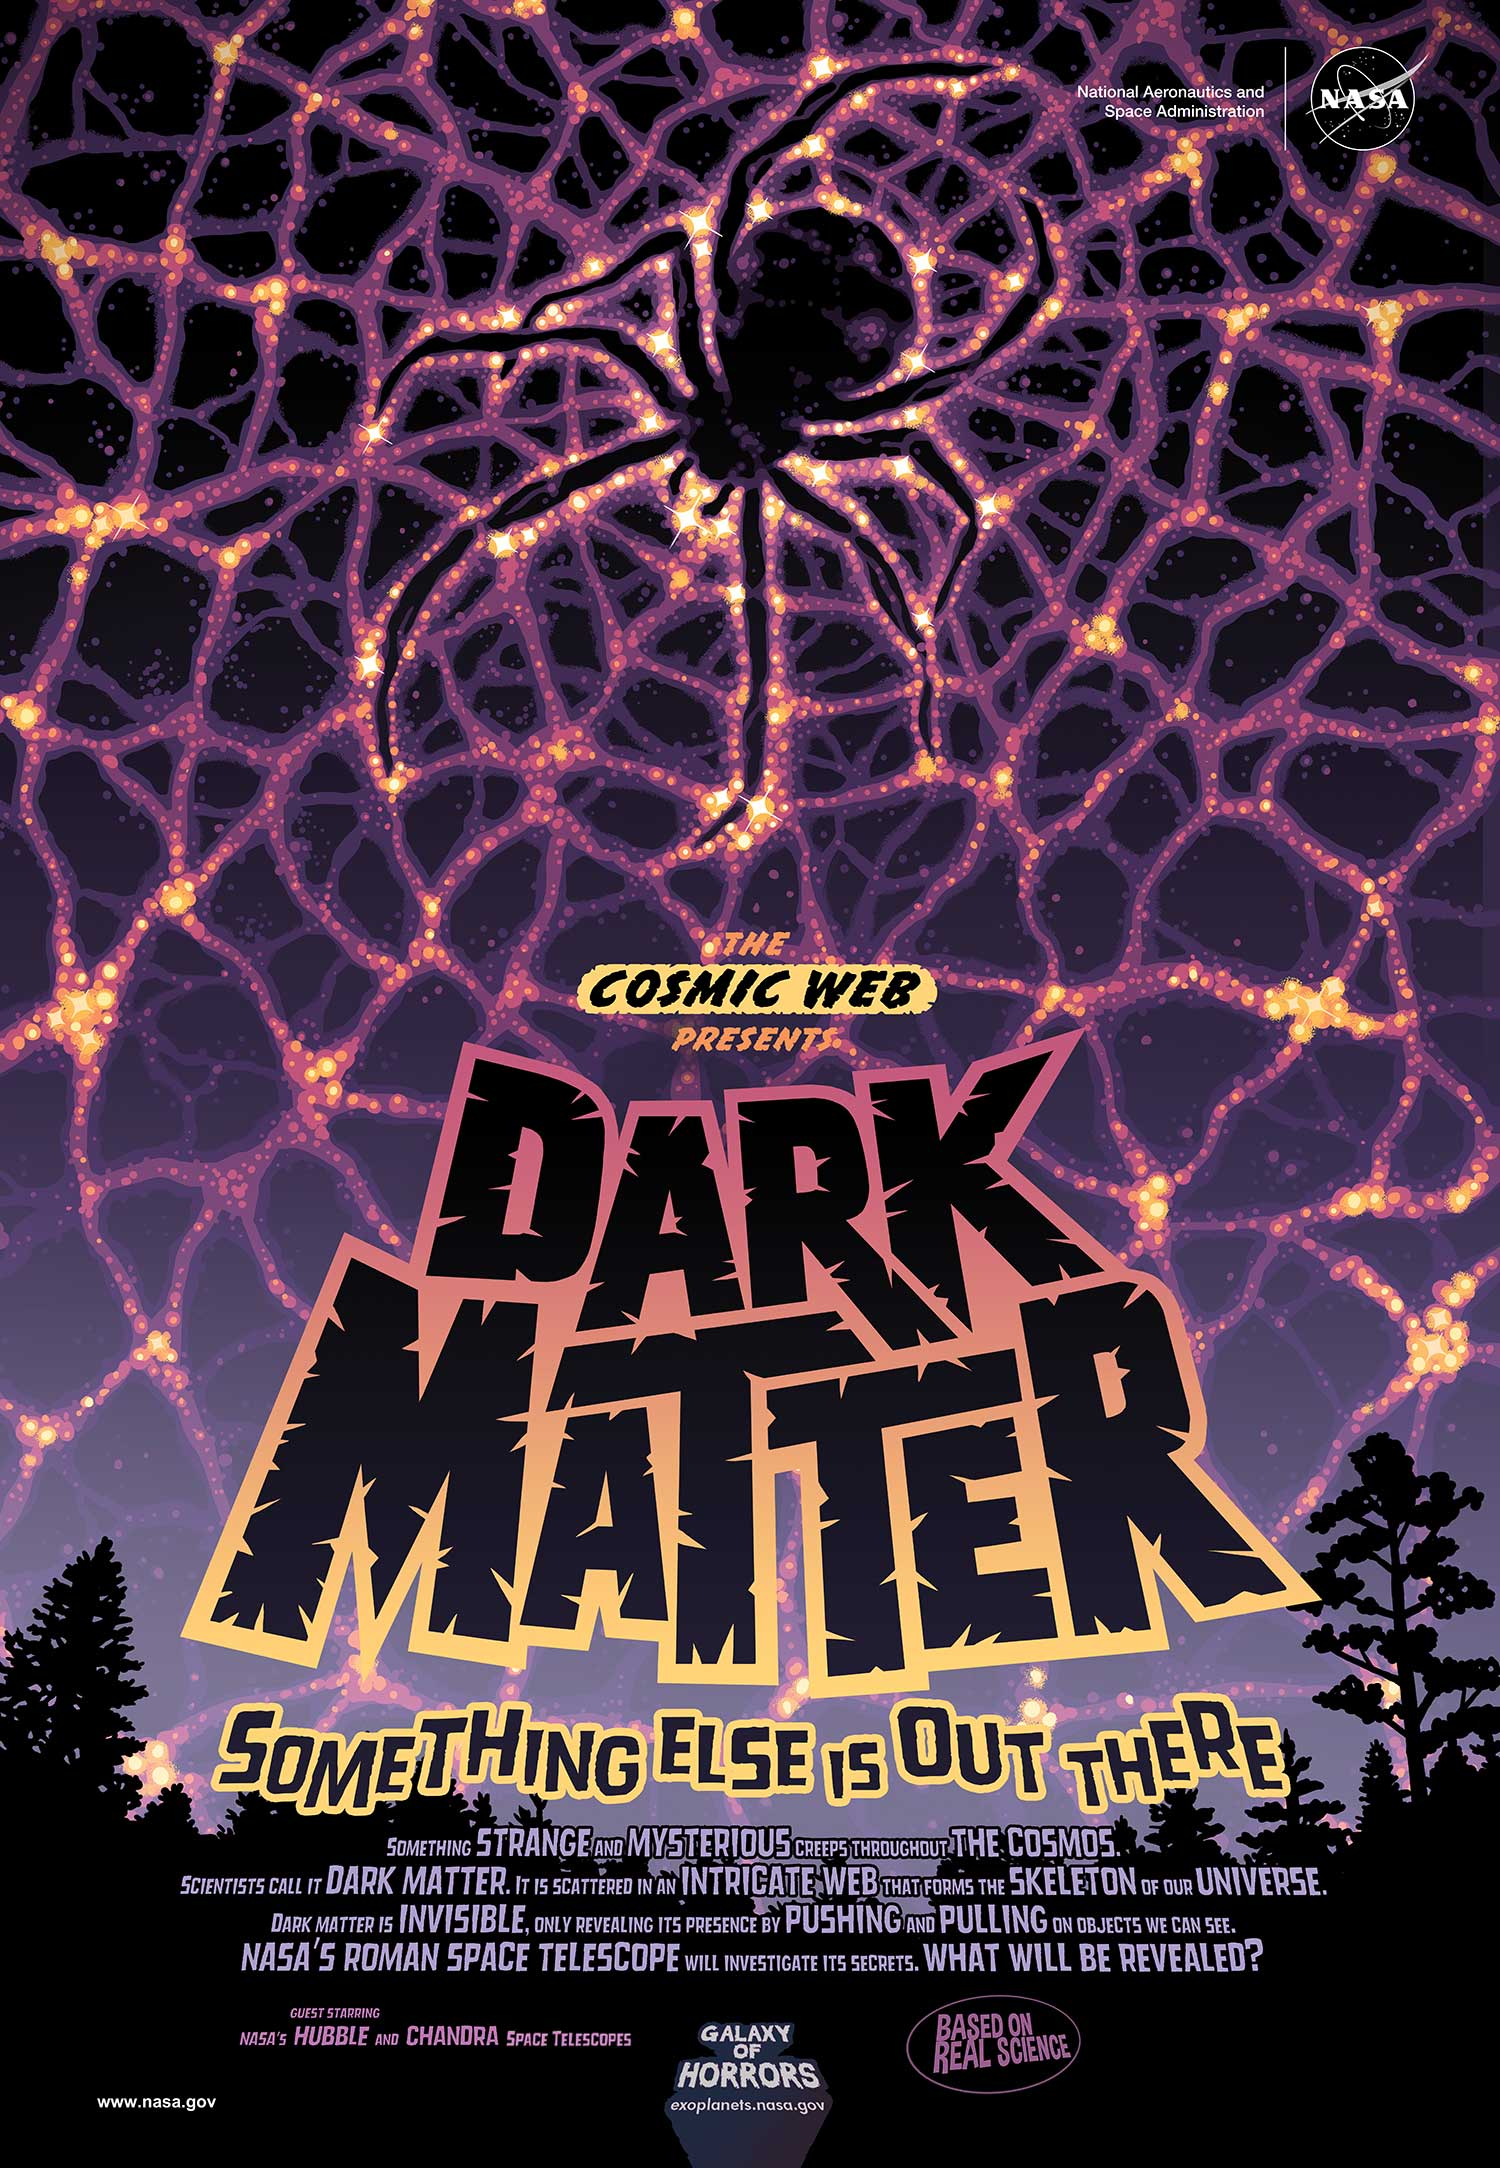 A luminous web is visible in the night sky beyond a treeline. Scattered between the nodes of the web is darkness, signifying the presence of dark matter. In the center of the web, the darkness melds to form the shape of a spider.